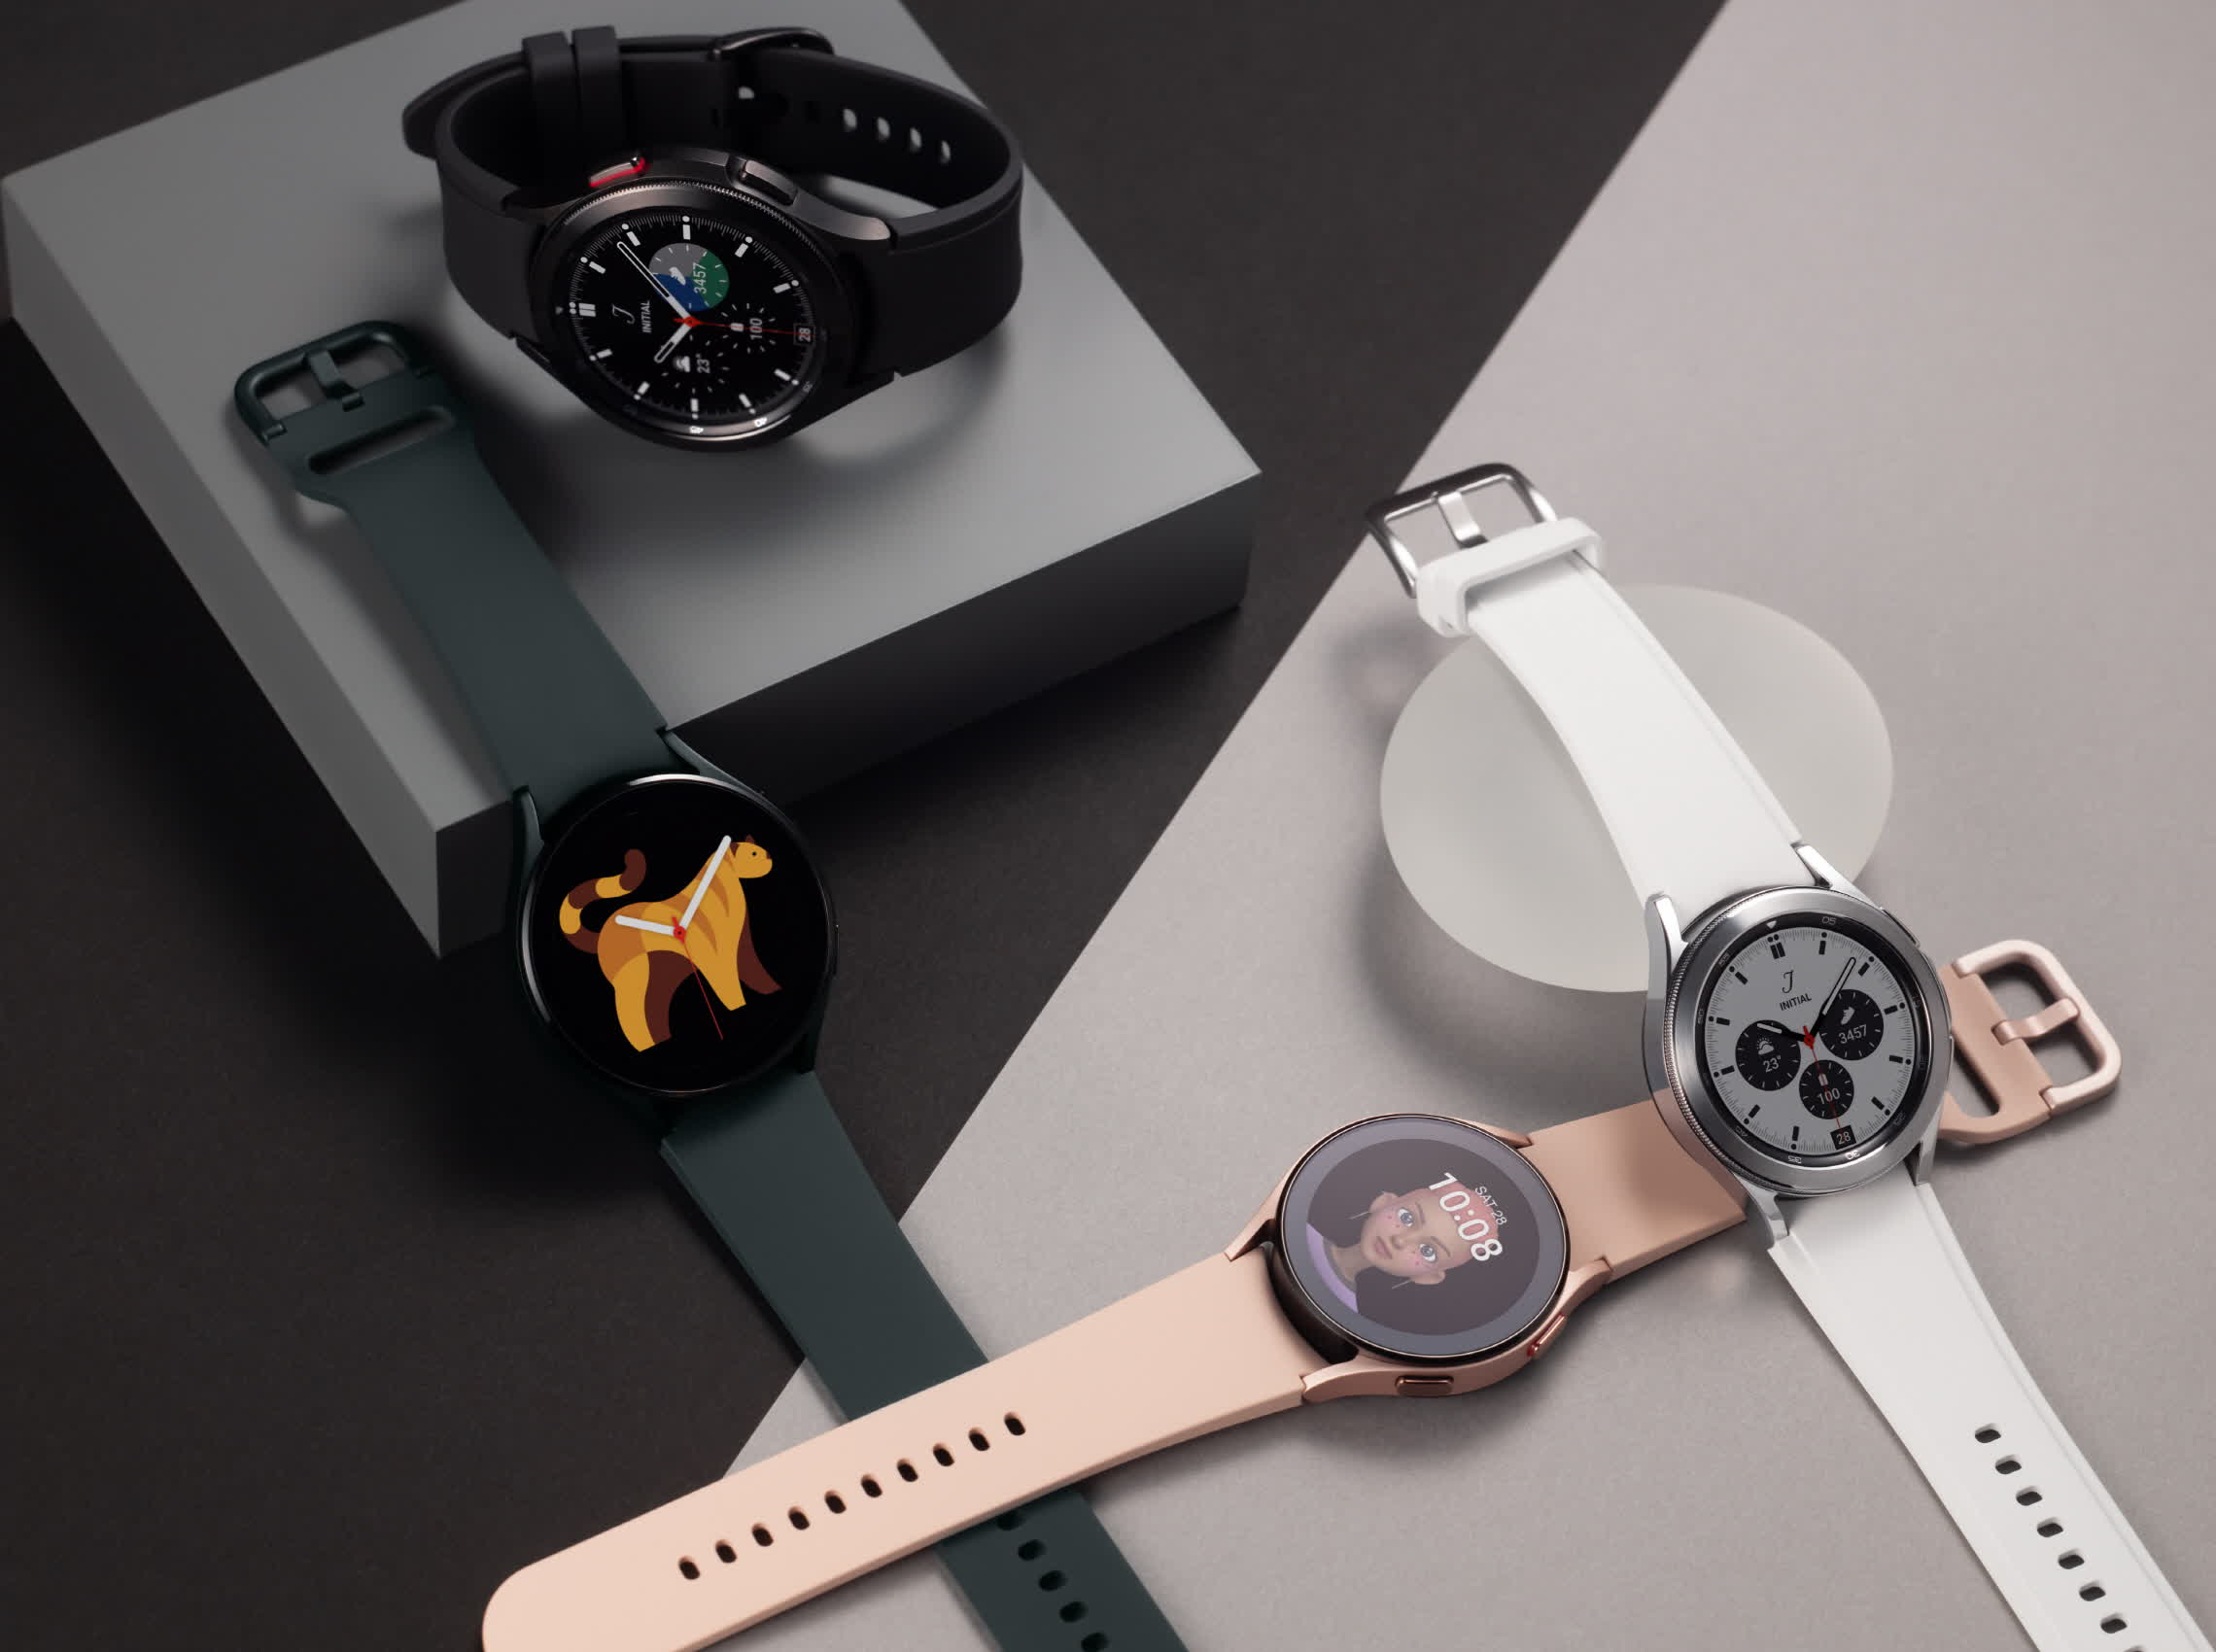 The Galaxy Watch4 is the first Samsung wearable with Google software